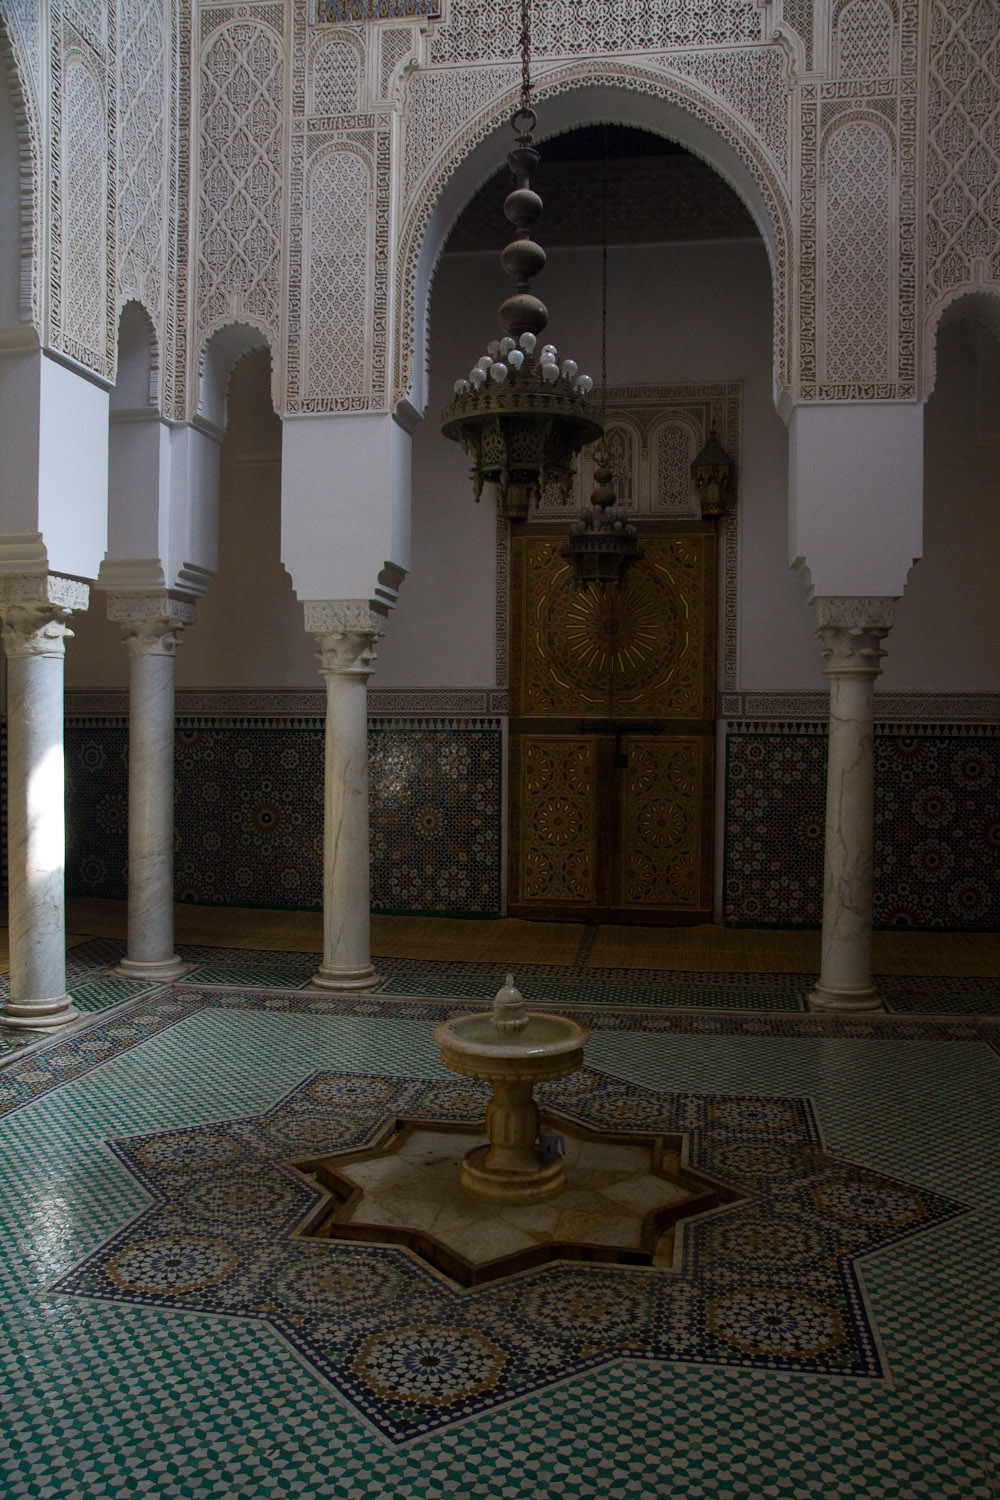 Interior del mausoleo de Moulay Ismail - Meknès, Marruecos